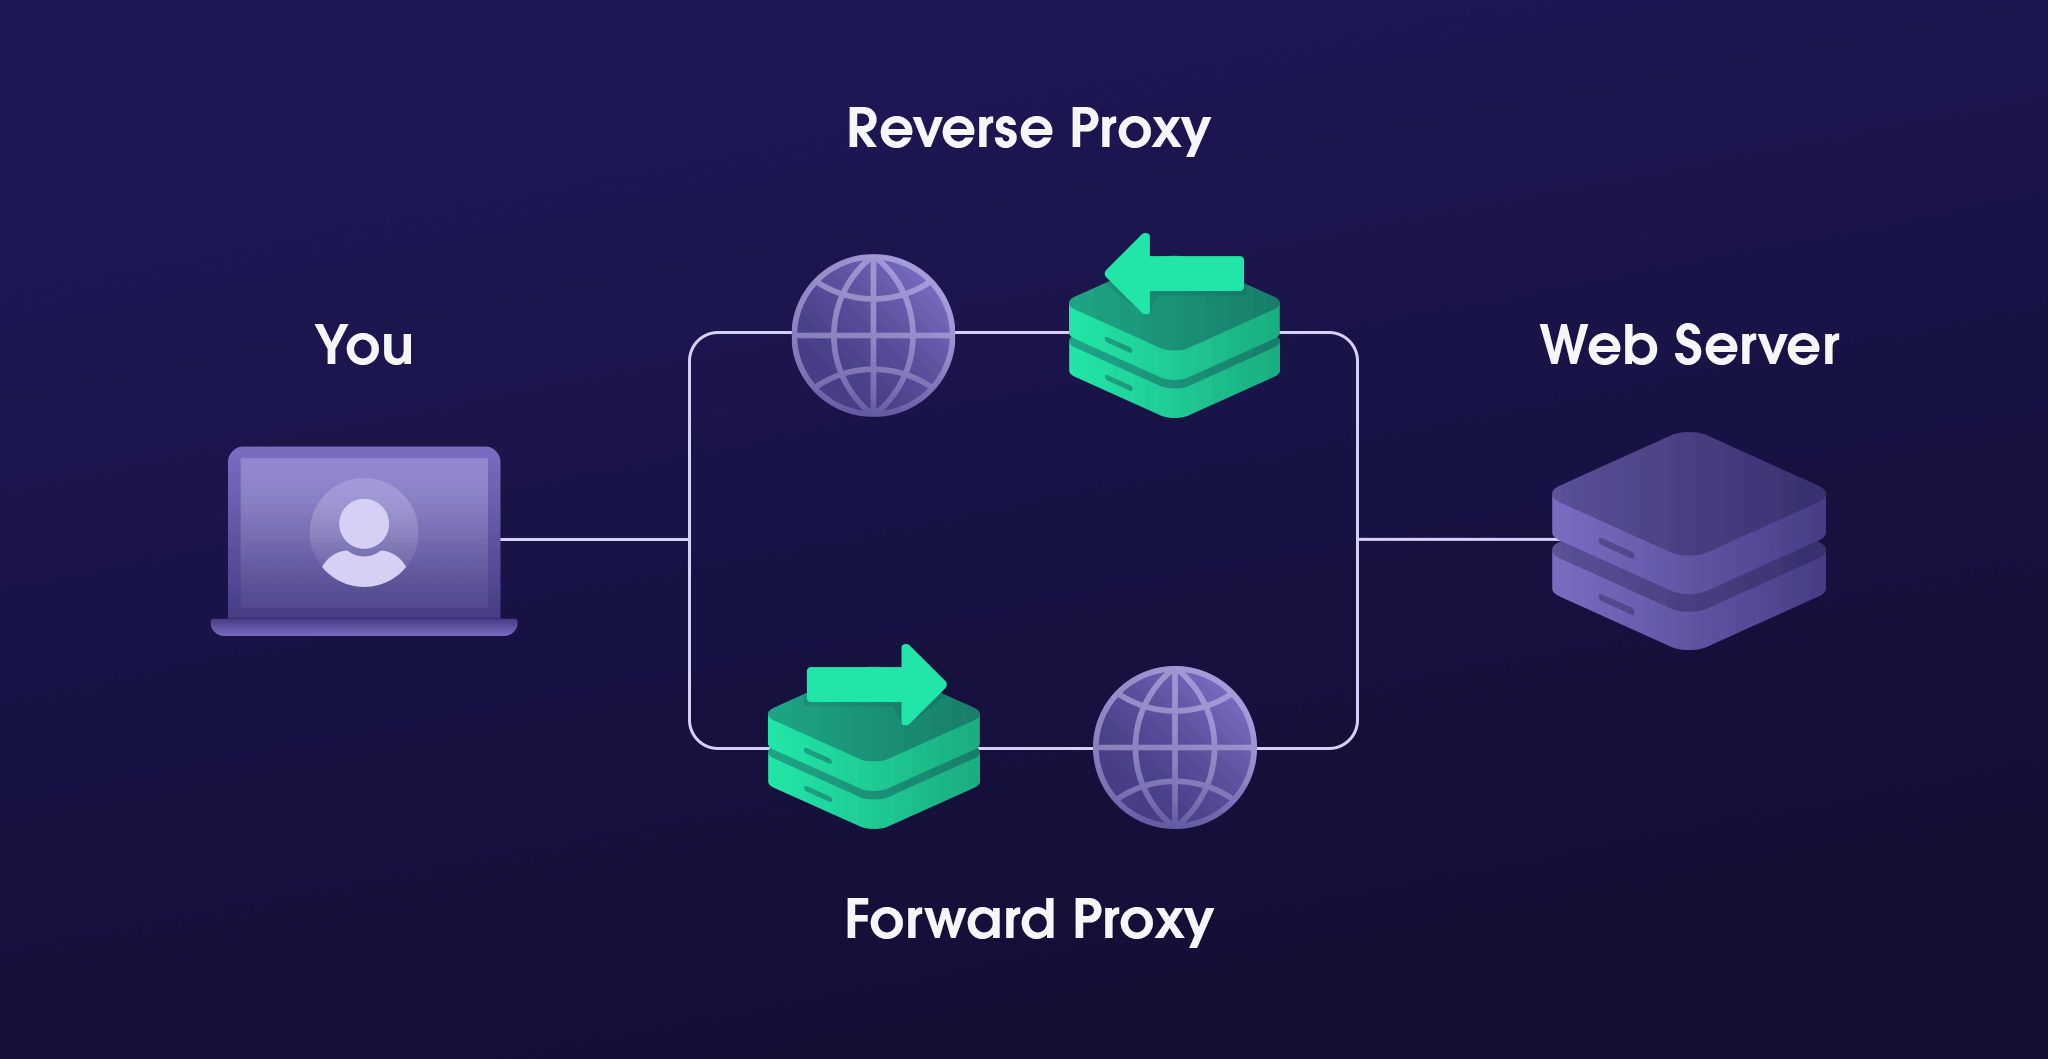 The differences between forward and reverse proxies